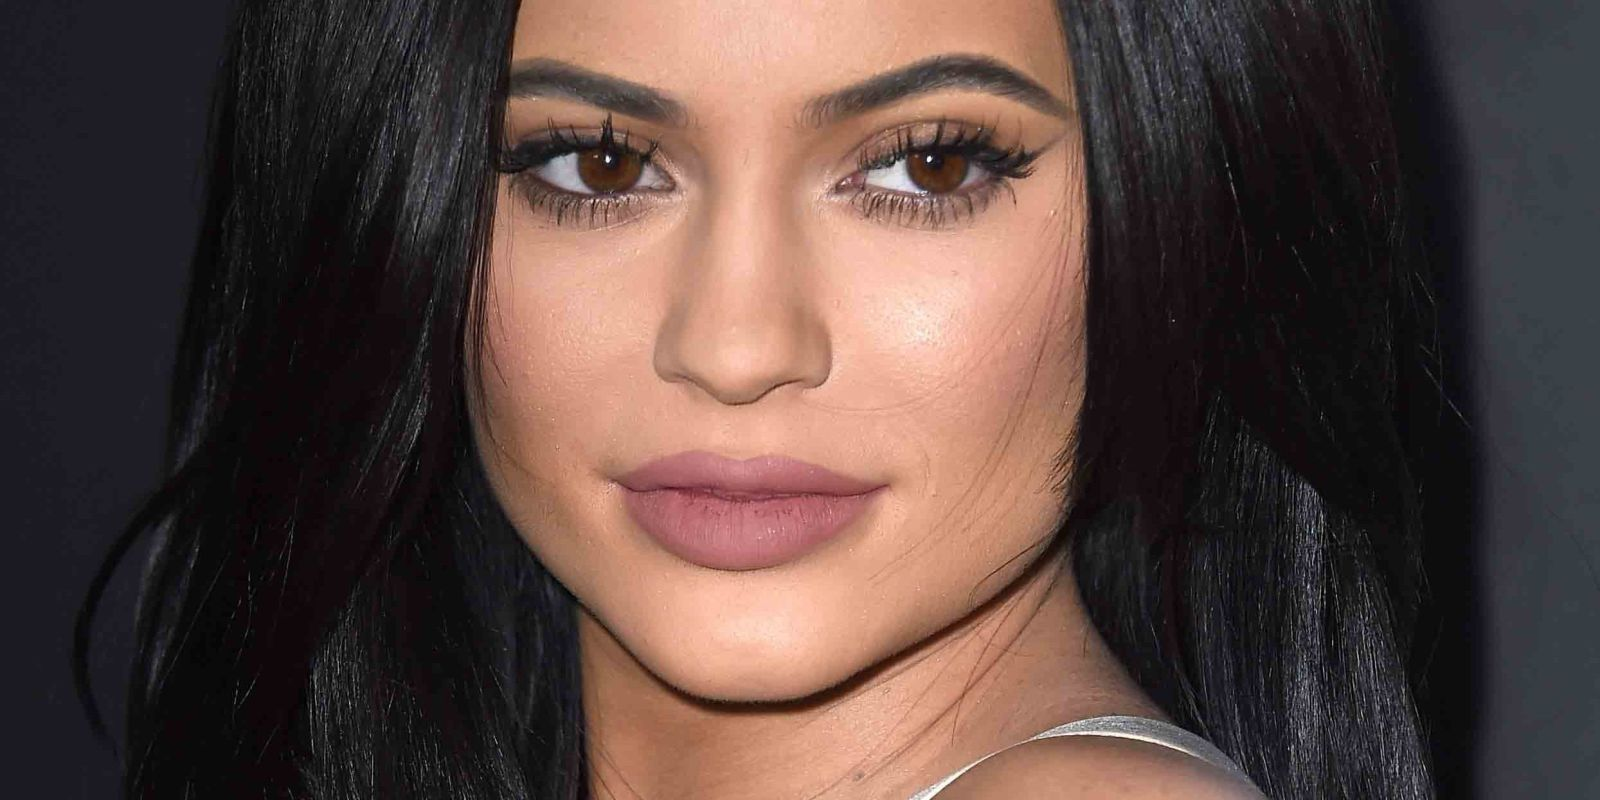 How to Get Kylie's Plump Lips